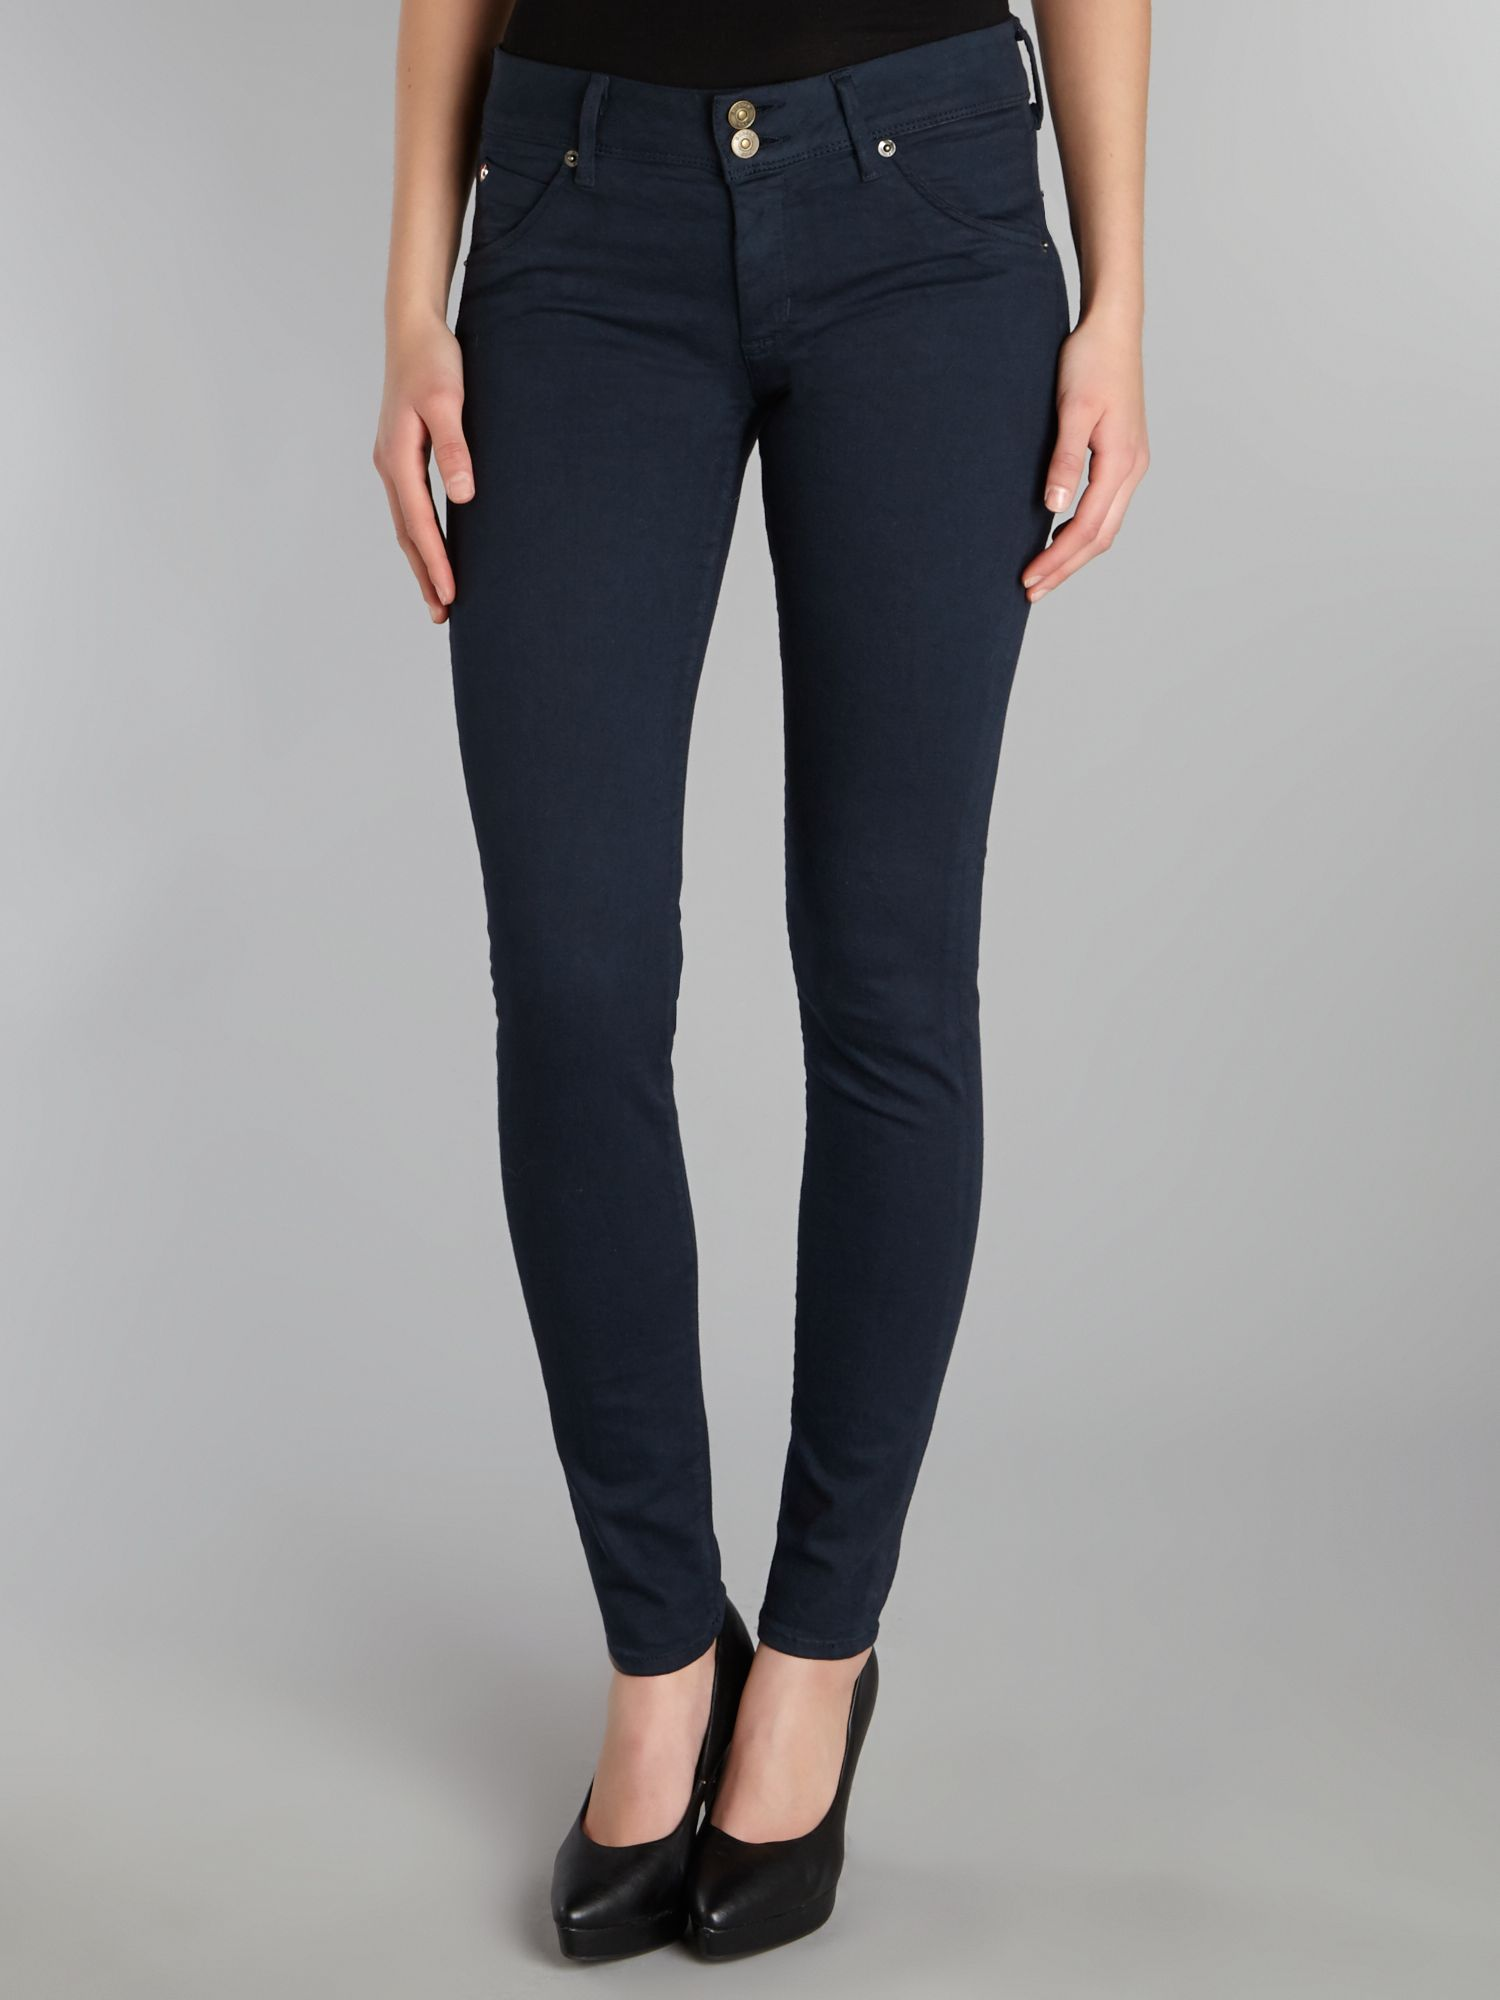 Collin signature skinny jeans in Petrol Blue